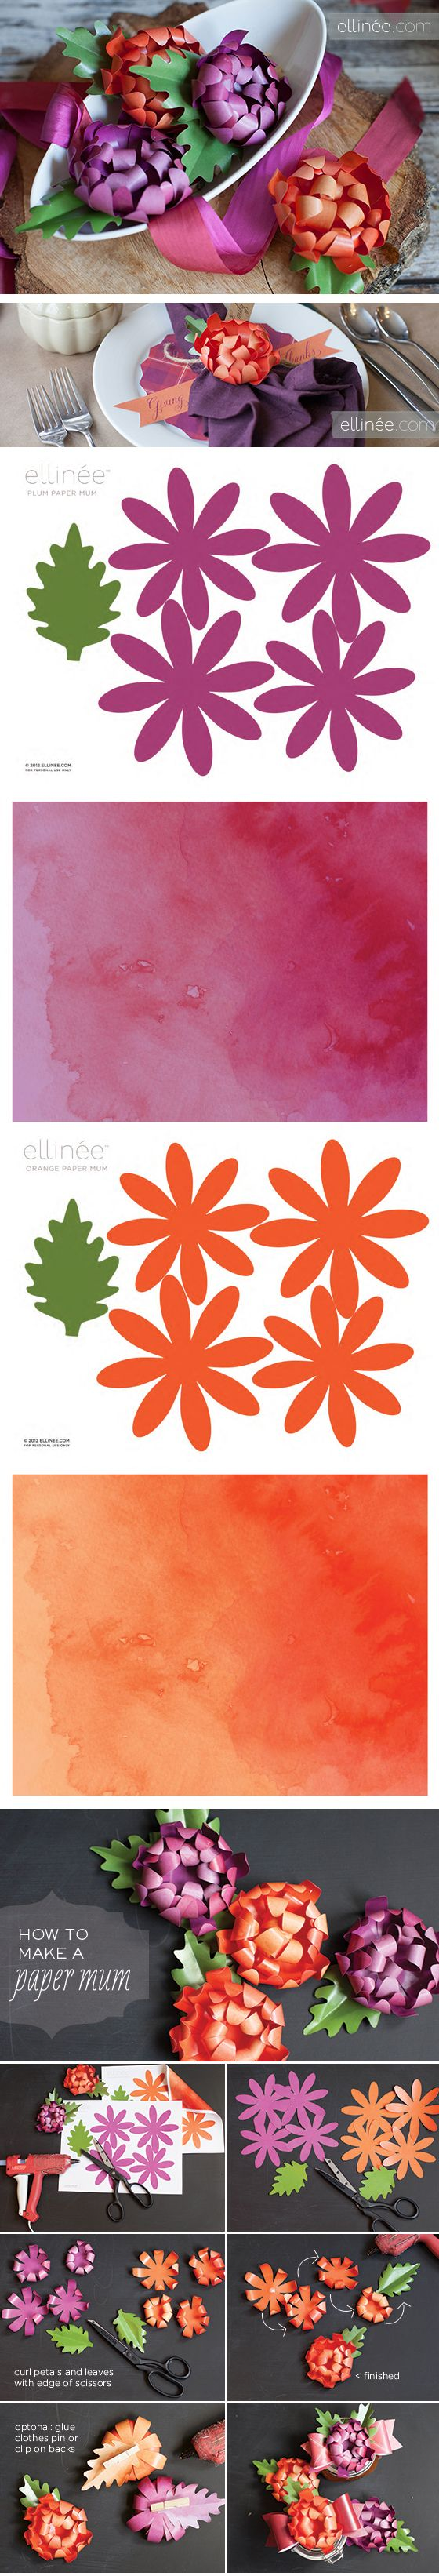 Paper mum tutorial (with free templates and watercolour papers) from Ellinée http://www.ellinee.com/blog/paper-mum-printables-tutorial/